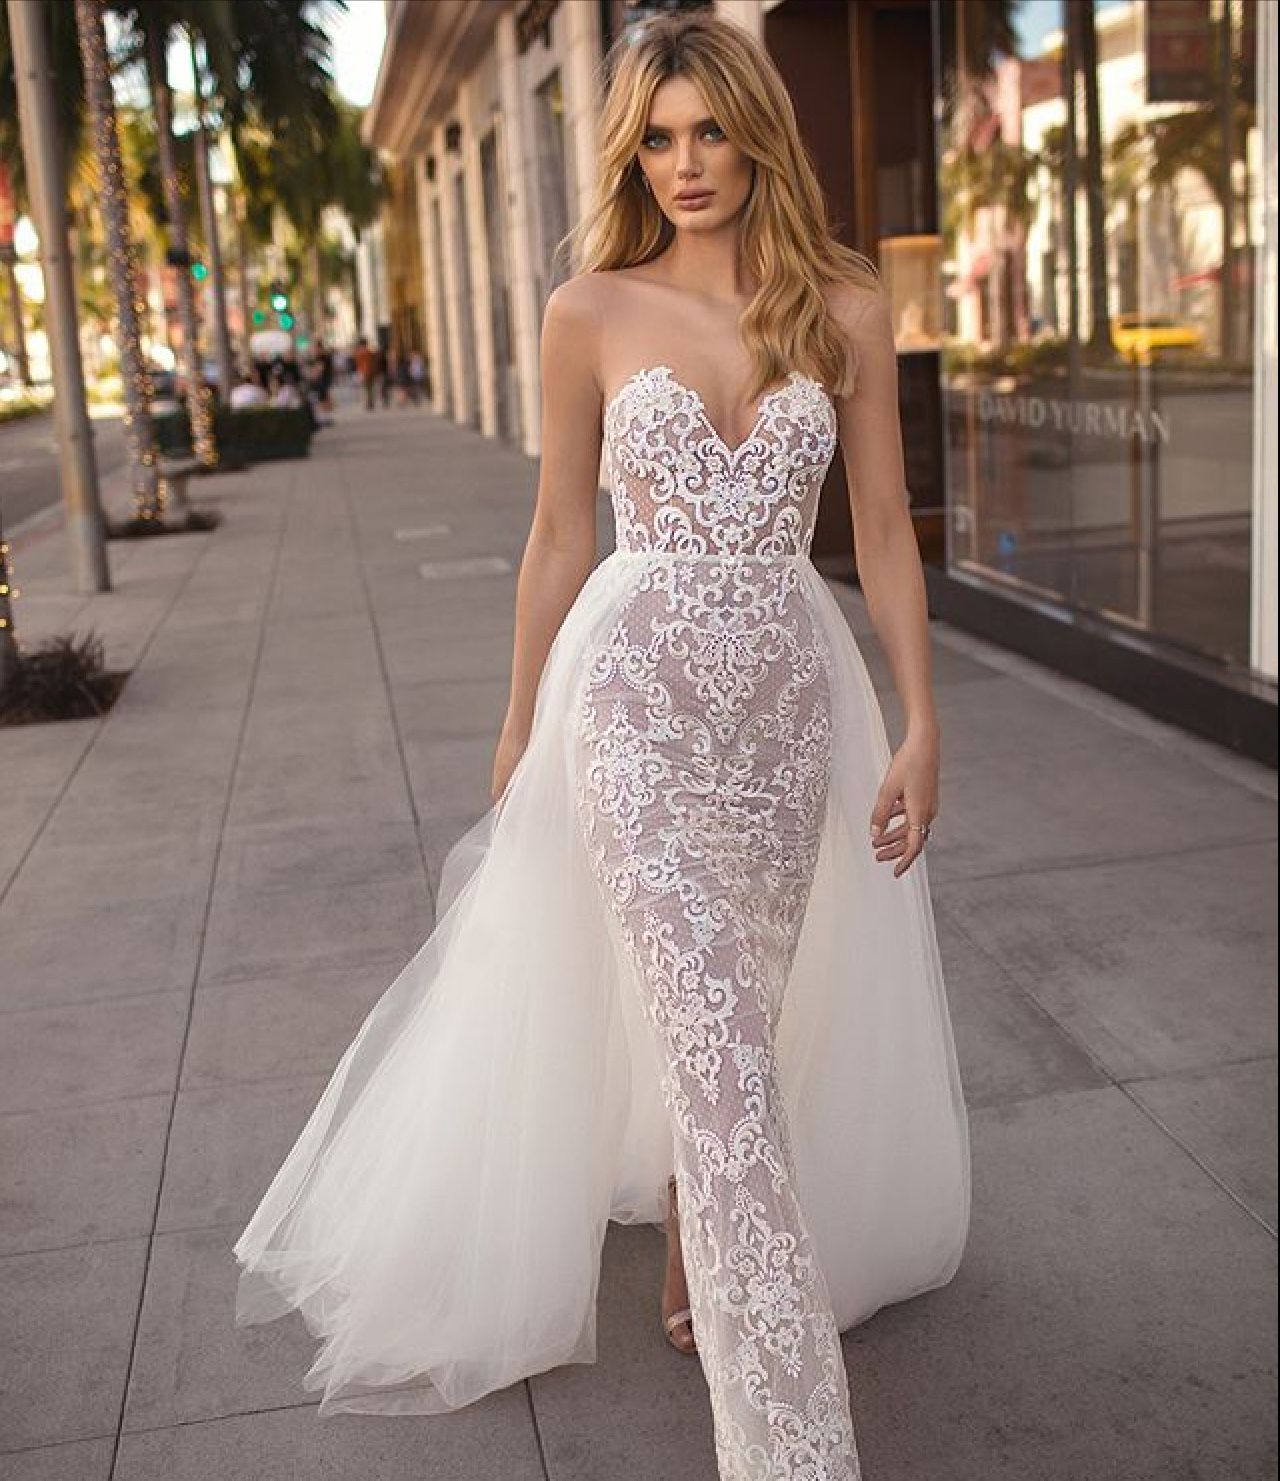 e049a83f51aa3 Camila by Muse by Berta | Bustle Gowns in 2019 | Strapless lace ...